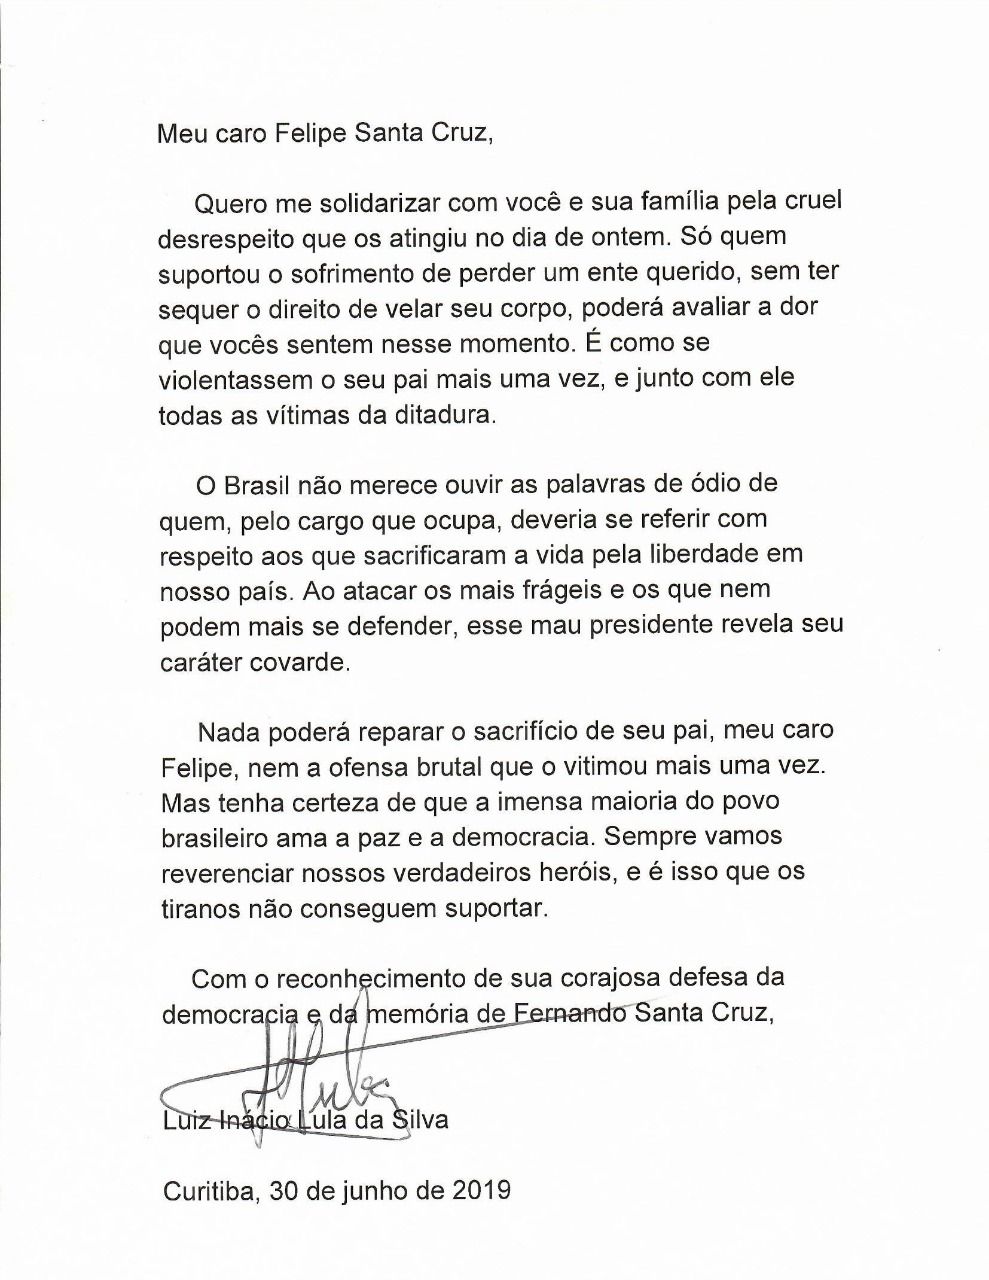 Letter from Lula to Felipe Santa Cruz, President of the Brazilian Bar Association